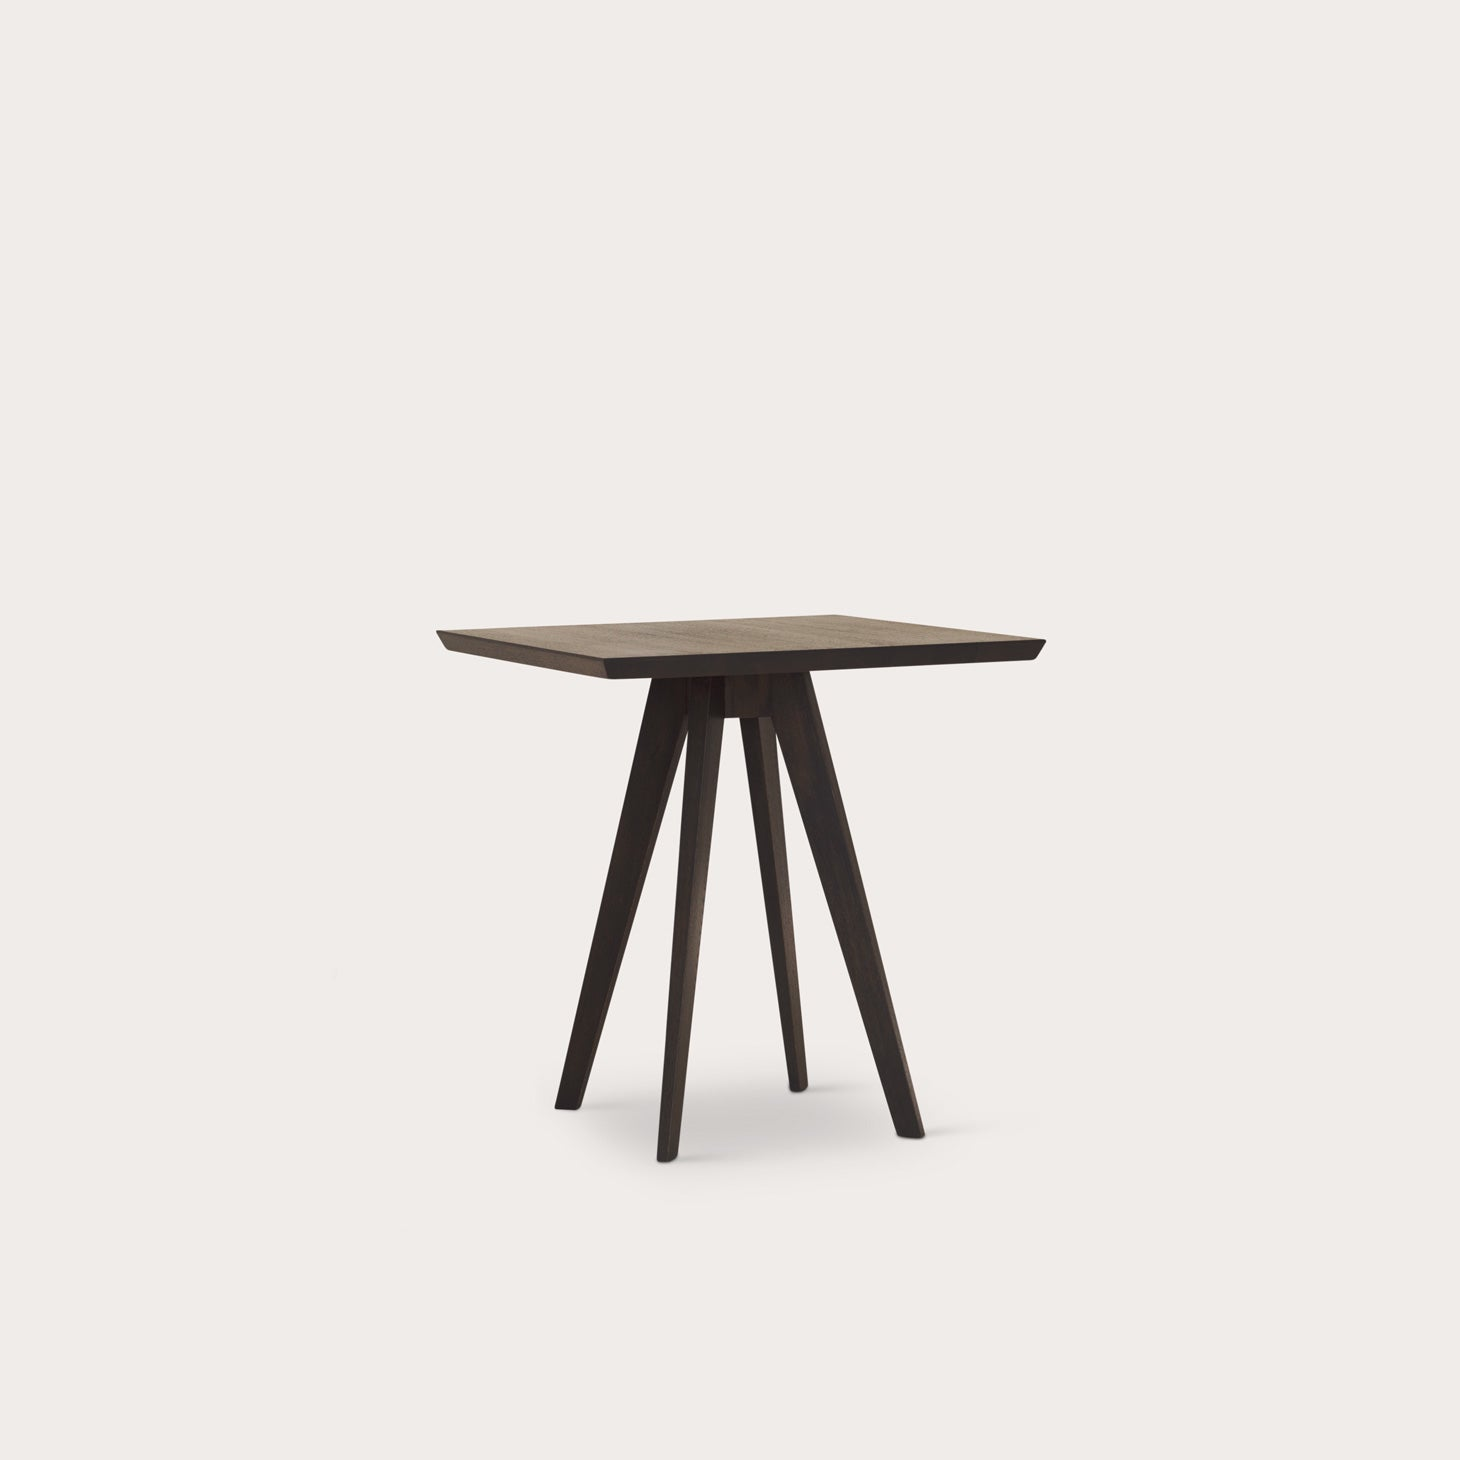 Cena Square Cafe Table Tables Birgit Gämmerler Designer Furniture Sku: 006-230-10229